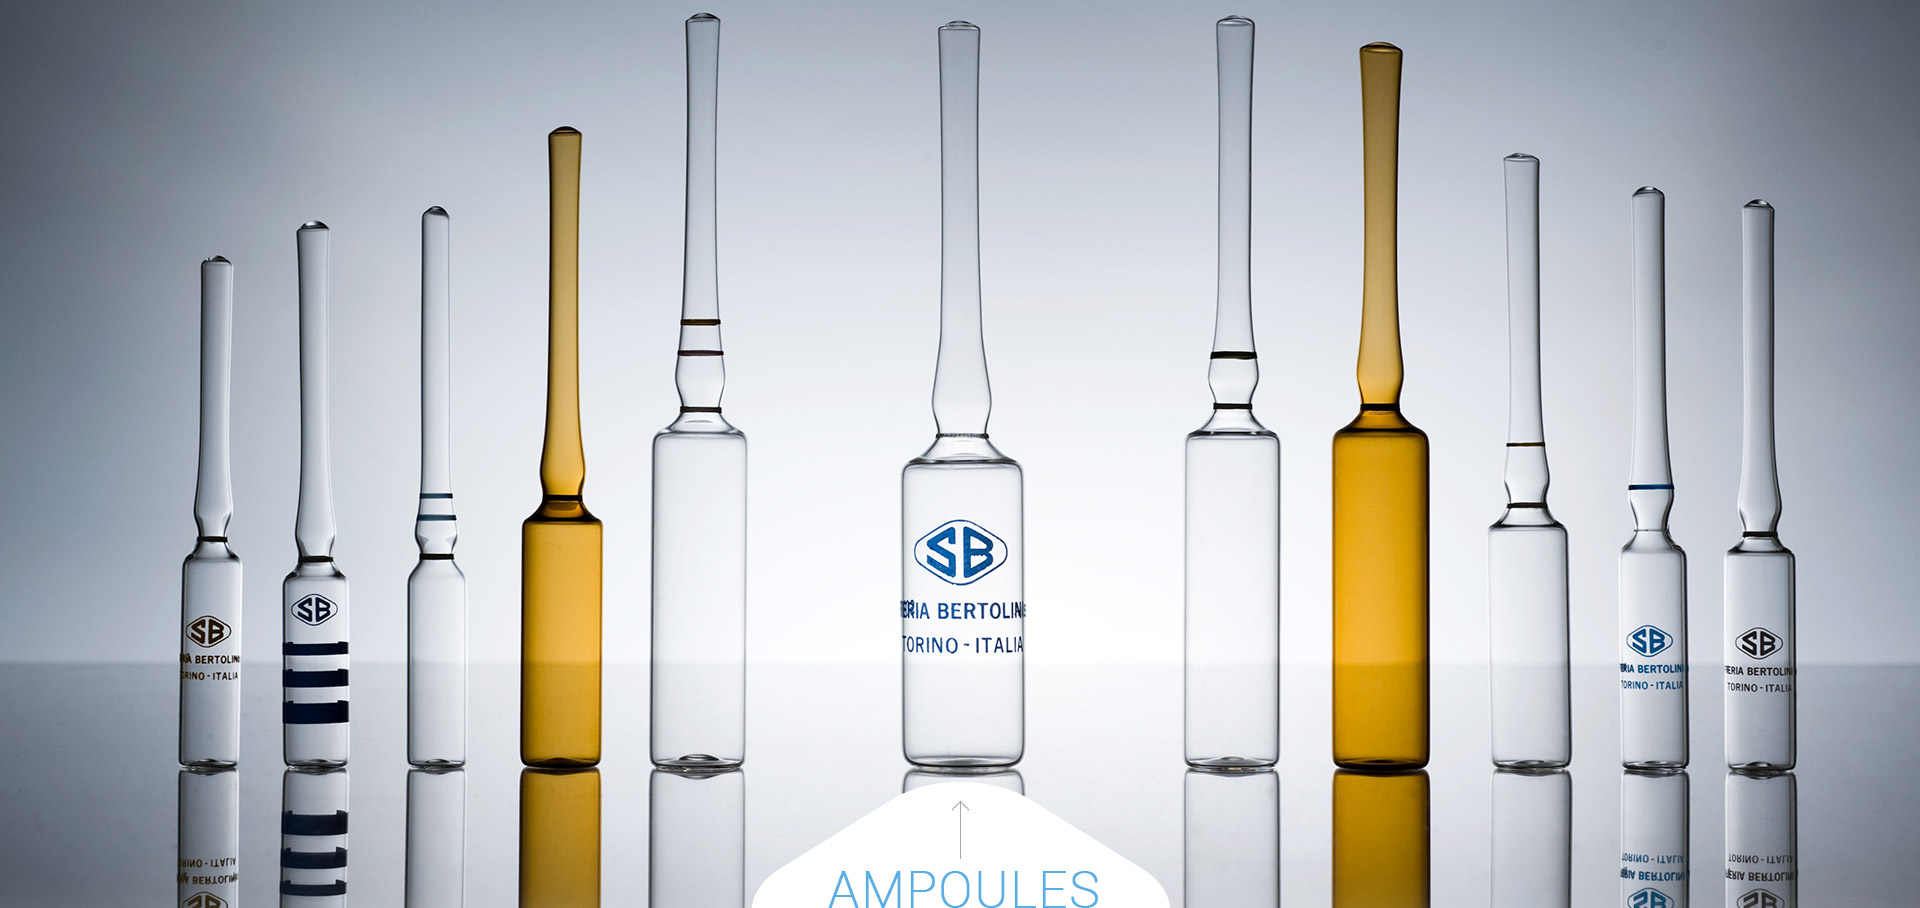 Soffieria Bertolini manufacture ampoules for the pharmaceutical industry